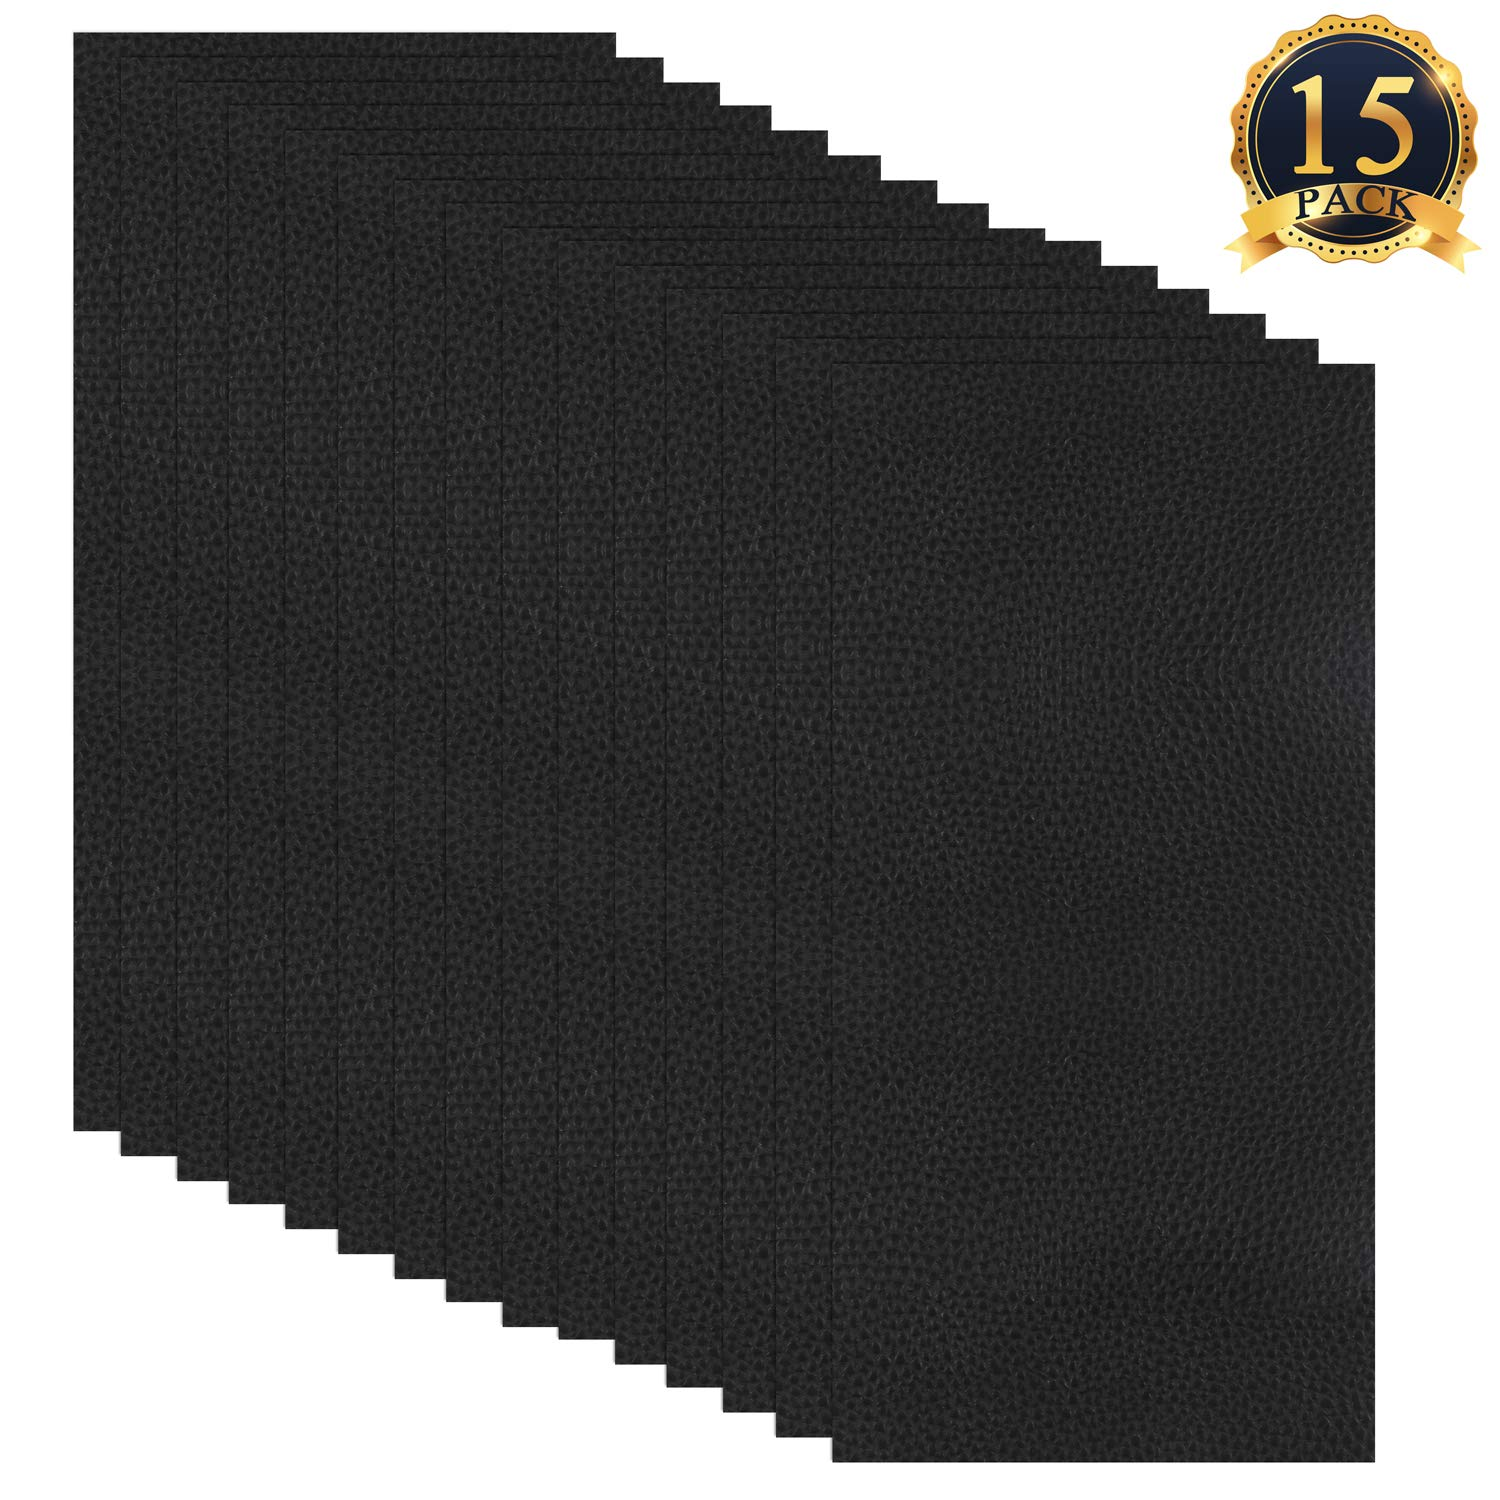 SUBANG 15 Pieces Leather Patches Leather Repair Kit Adhesive Backing Leather Seat Patch for Repair Sofa, Car Seat, Jackets, Handbag, 8 by 4 Inch, Black